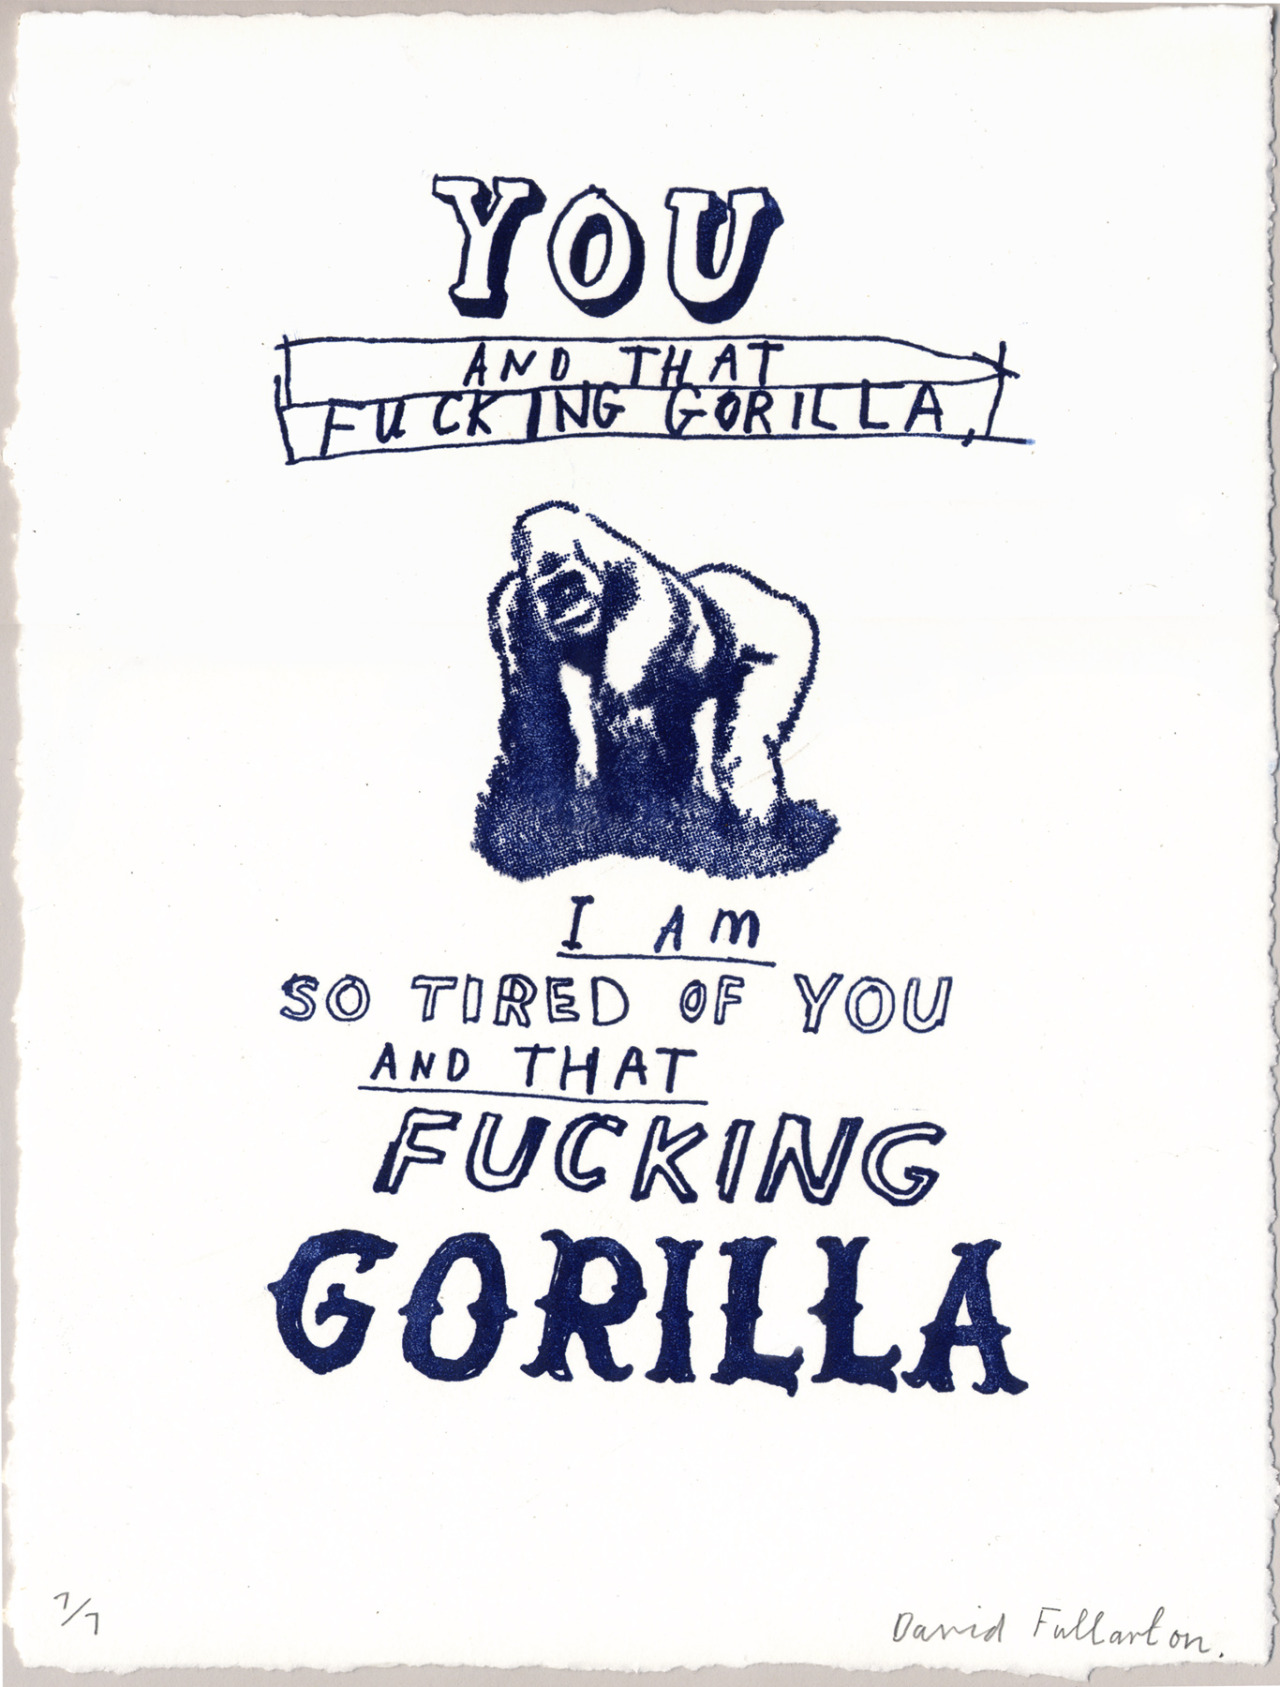 Everyone needs a little  Gratuitous Simian Profanity  in their lives, and now you can have some for  a mere $60.00 . Hand printed letterpress edition, now in the  Compound Gallery  and  online .